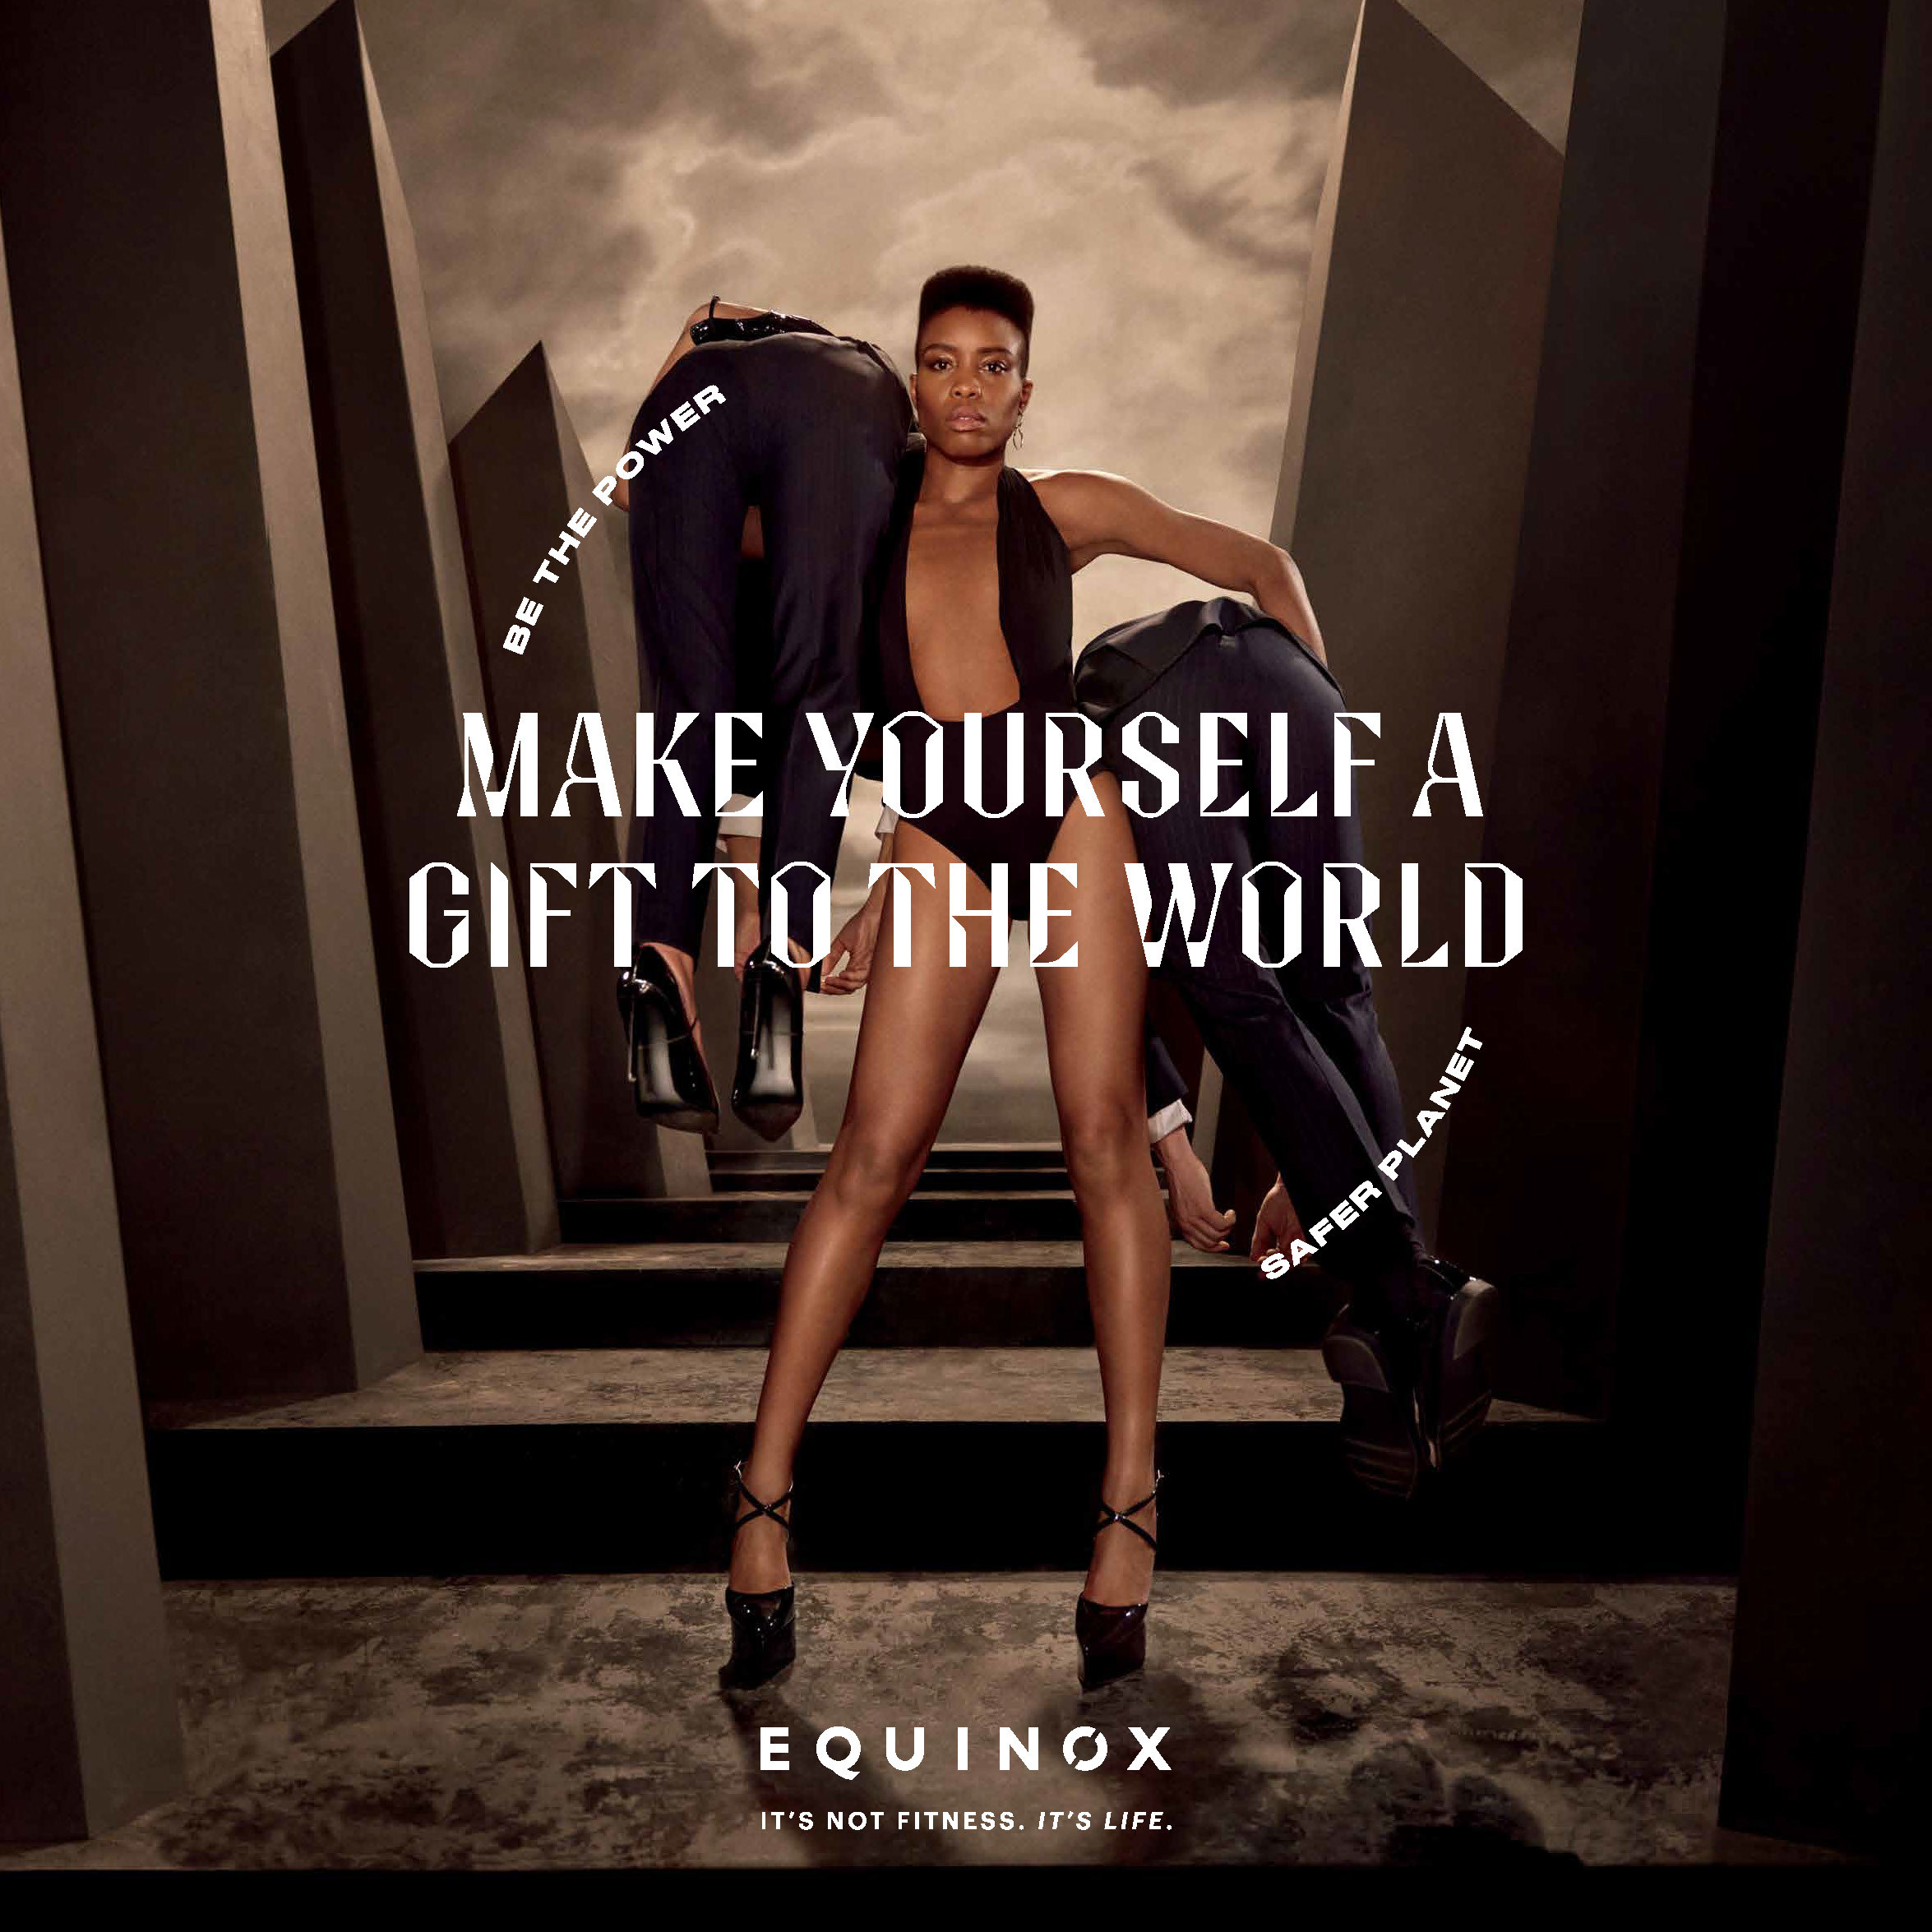 Equinox 'Make Yourself A Gift to The World' 2020 Ad Campaign Film